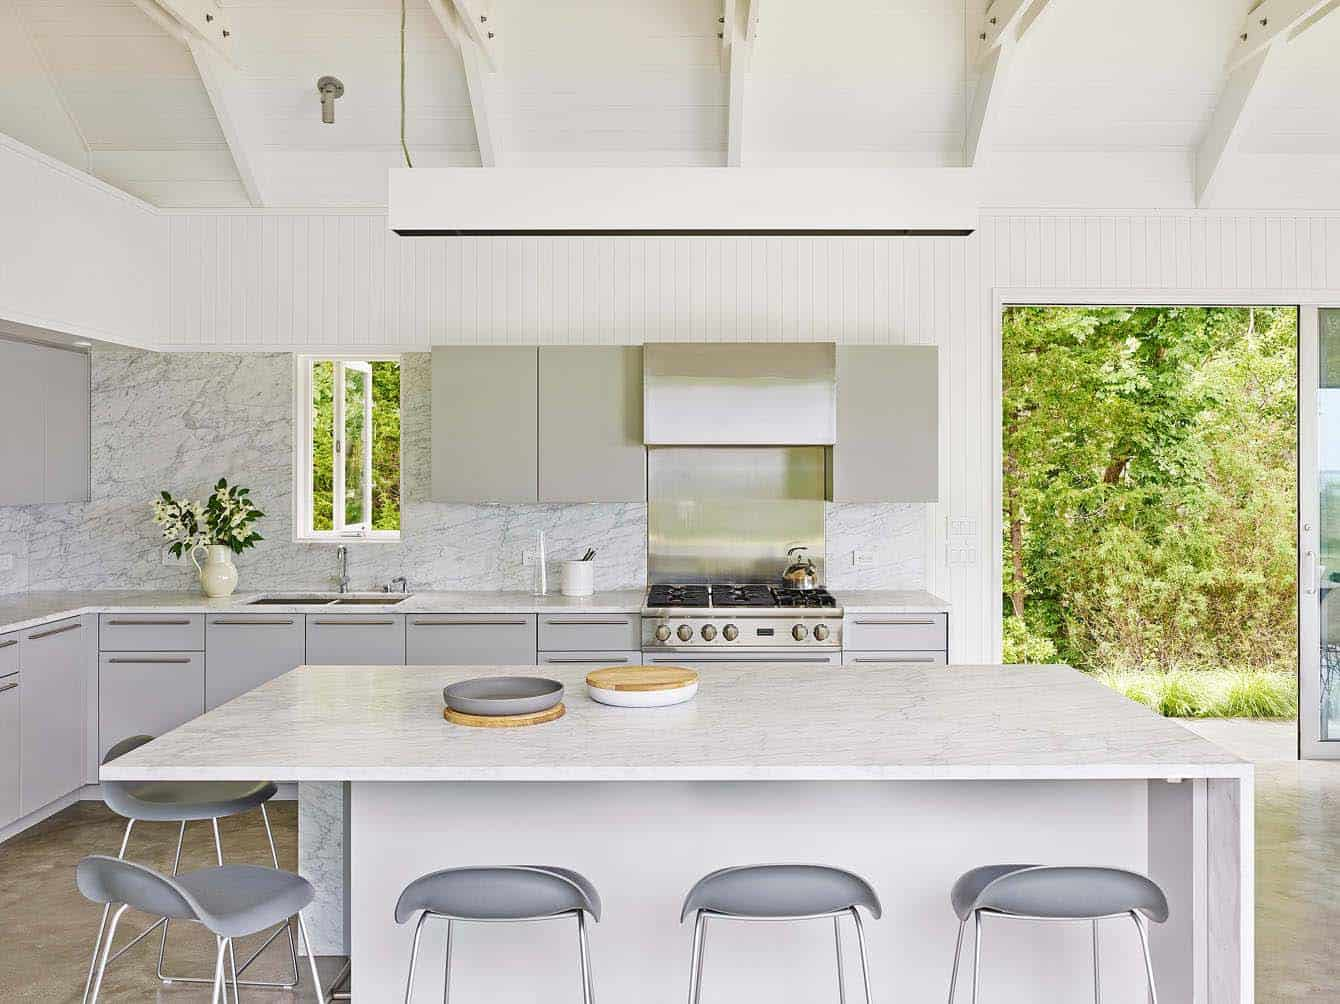 Waters Edge House-Robert Young Architects-07-1 Kindesign